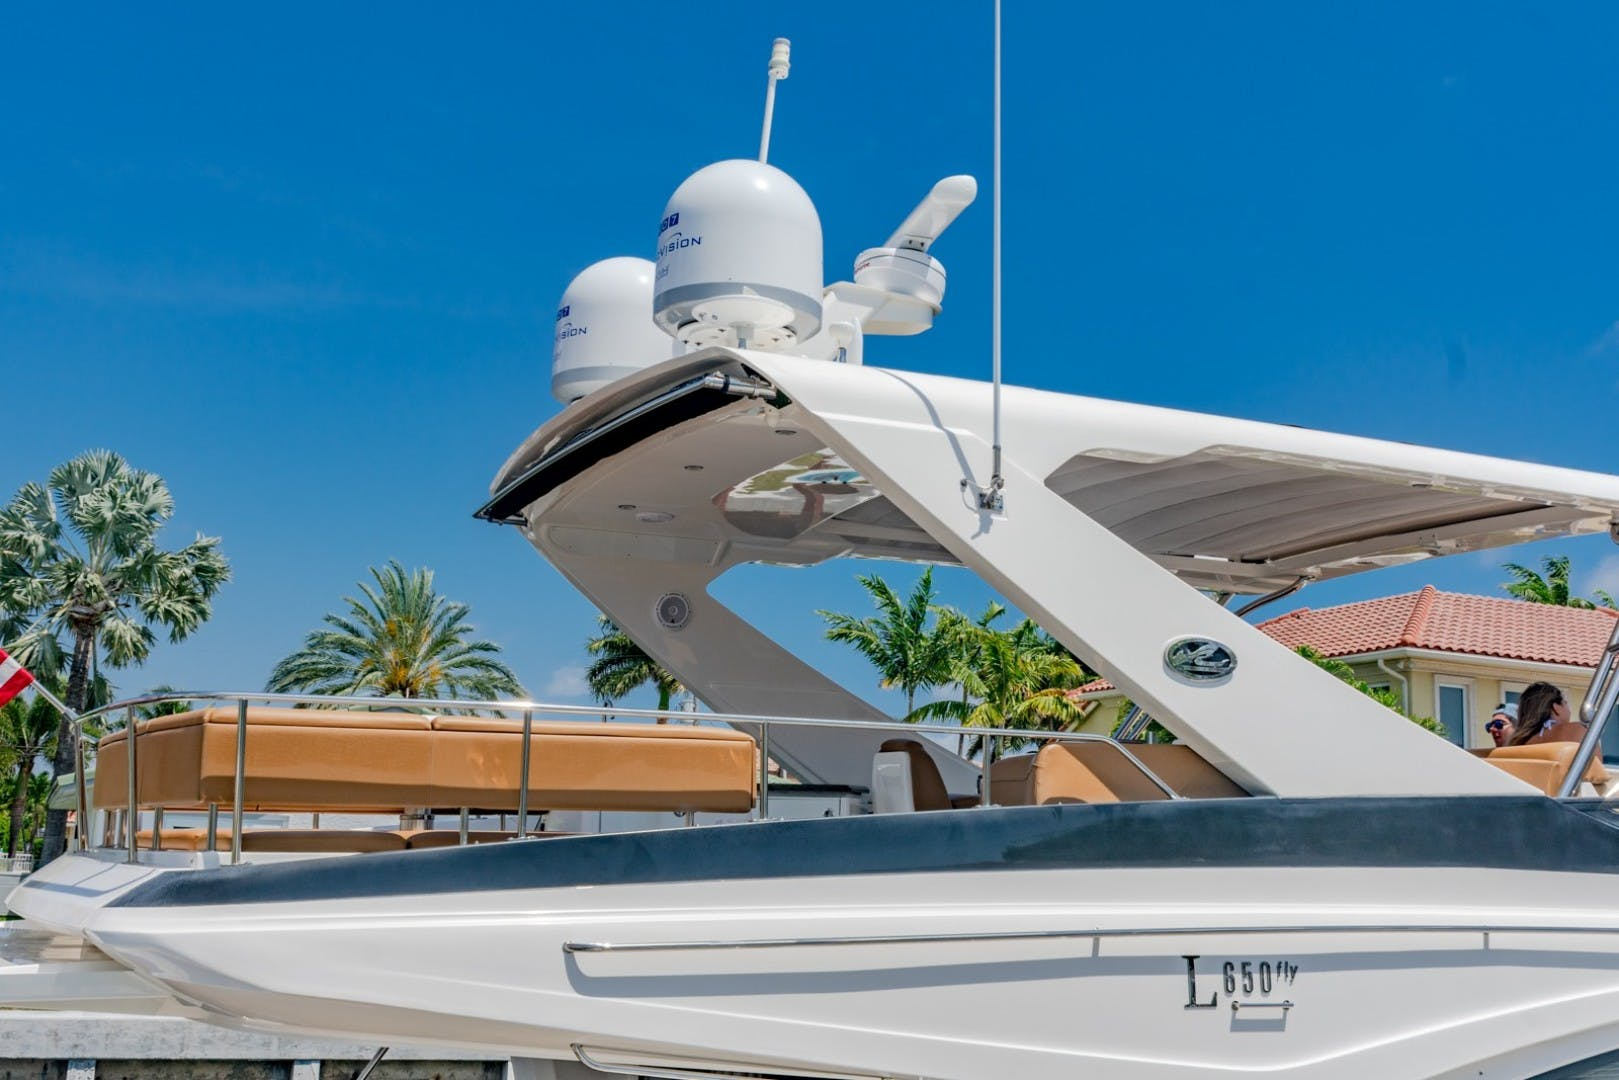 2016 Sea Ray 65' L650 Fly CAPRICHO | Picture 5 of 50